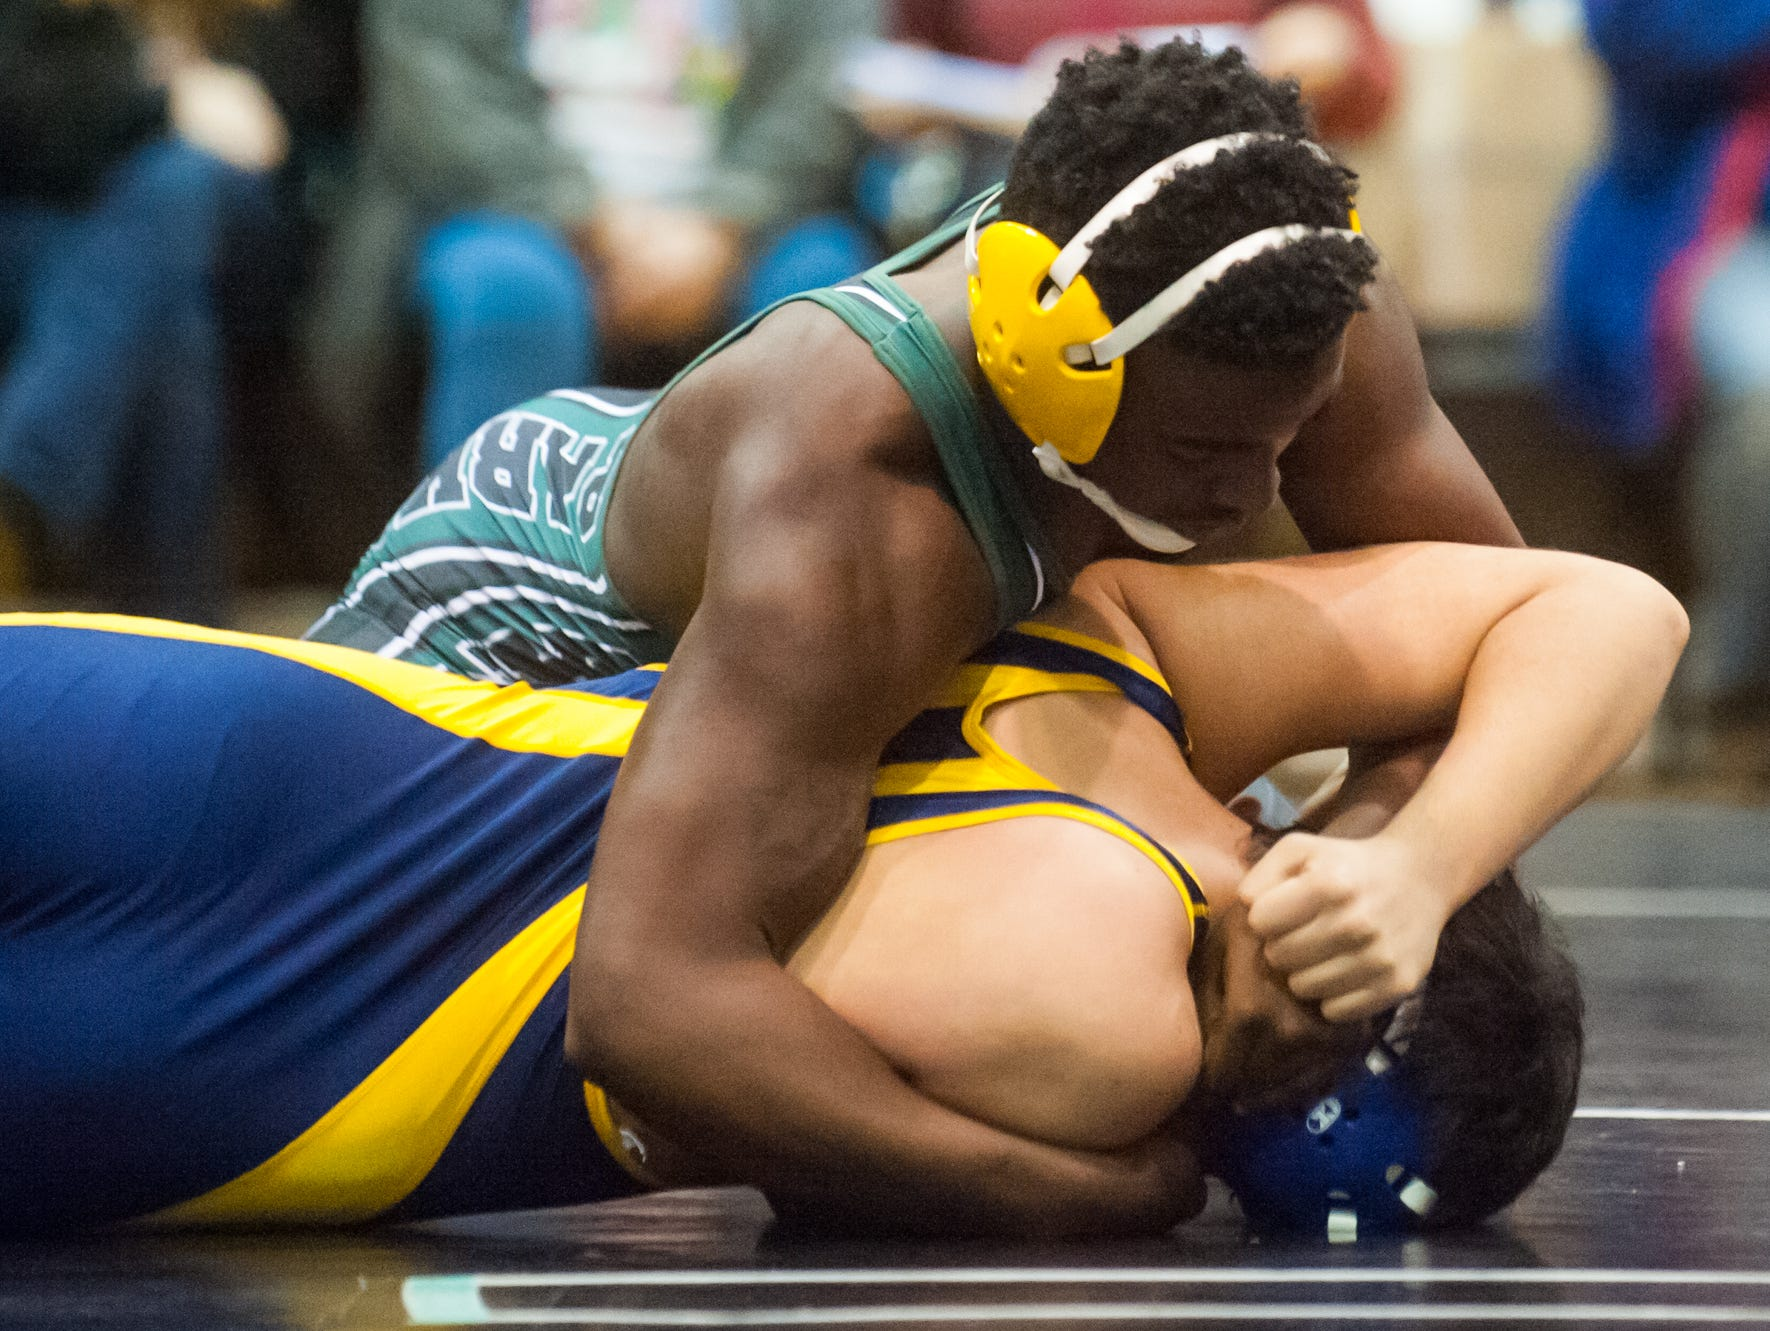 Parkside's Brent Hayman (200lb) attempts to wrap up his opponent during the Bob Rowe Memorial Classic on Friday evening at James M. Bennett High in Salisbury.